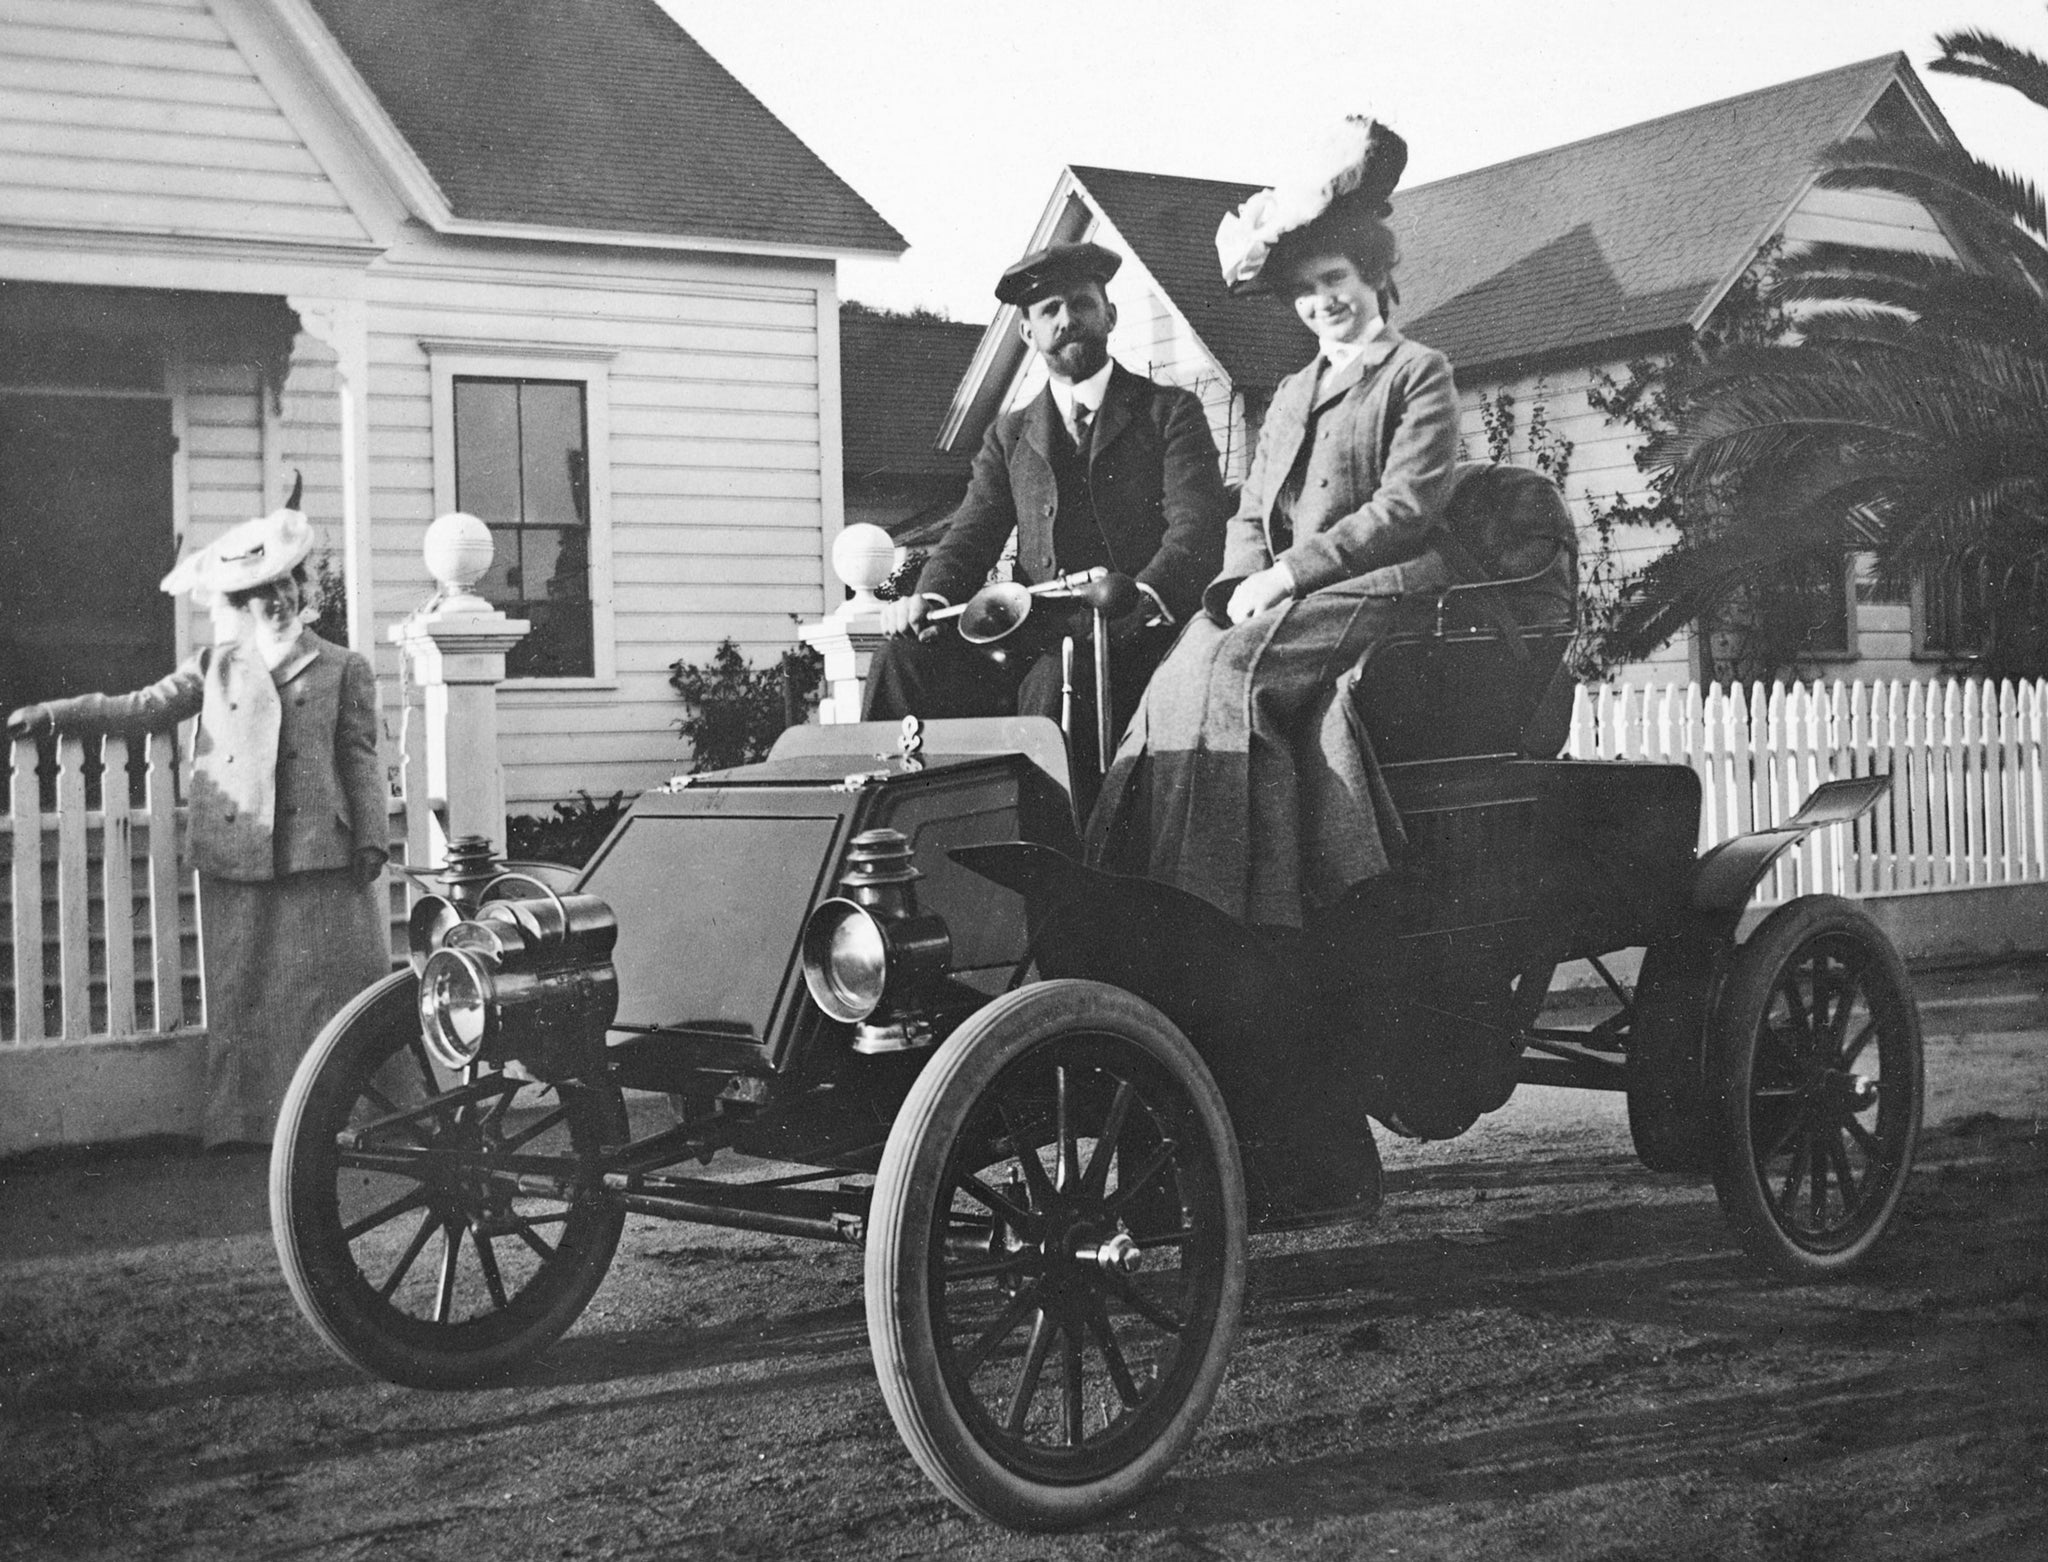 The first automobile in Watsonville, 1902. This 1902 Rambler Model C Runabout was a single-cylinder, six-horsepower vehicle and was truly a horseless carriage using a lever to steer the vehicle. It sold for $750. -- Courtesy of Charles Bergtold